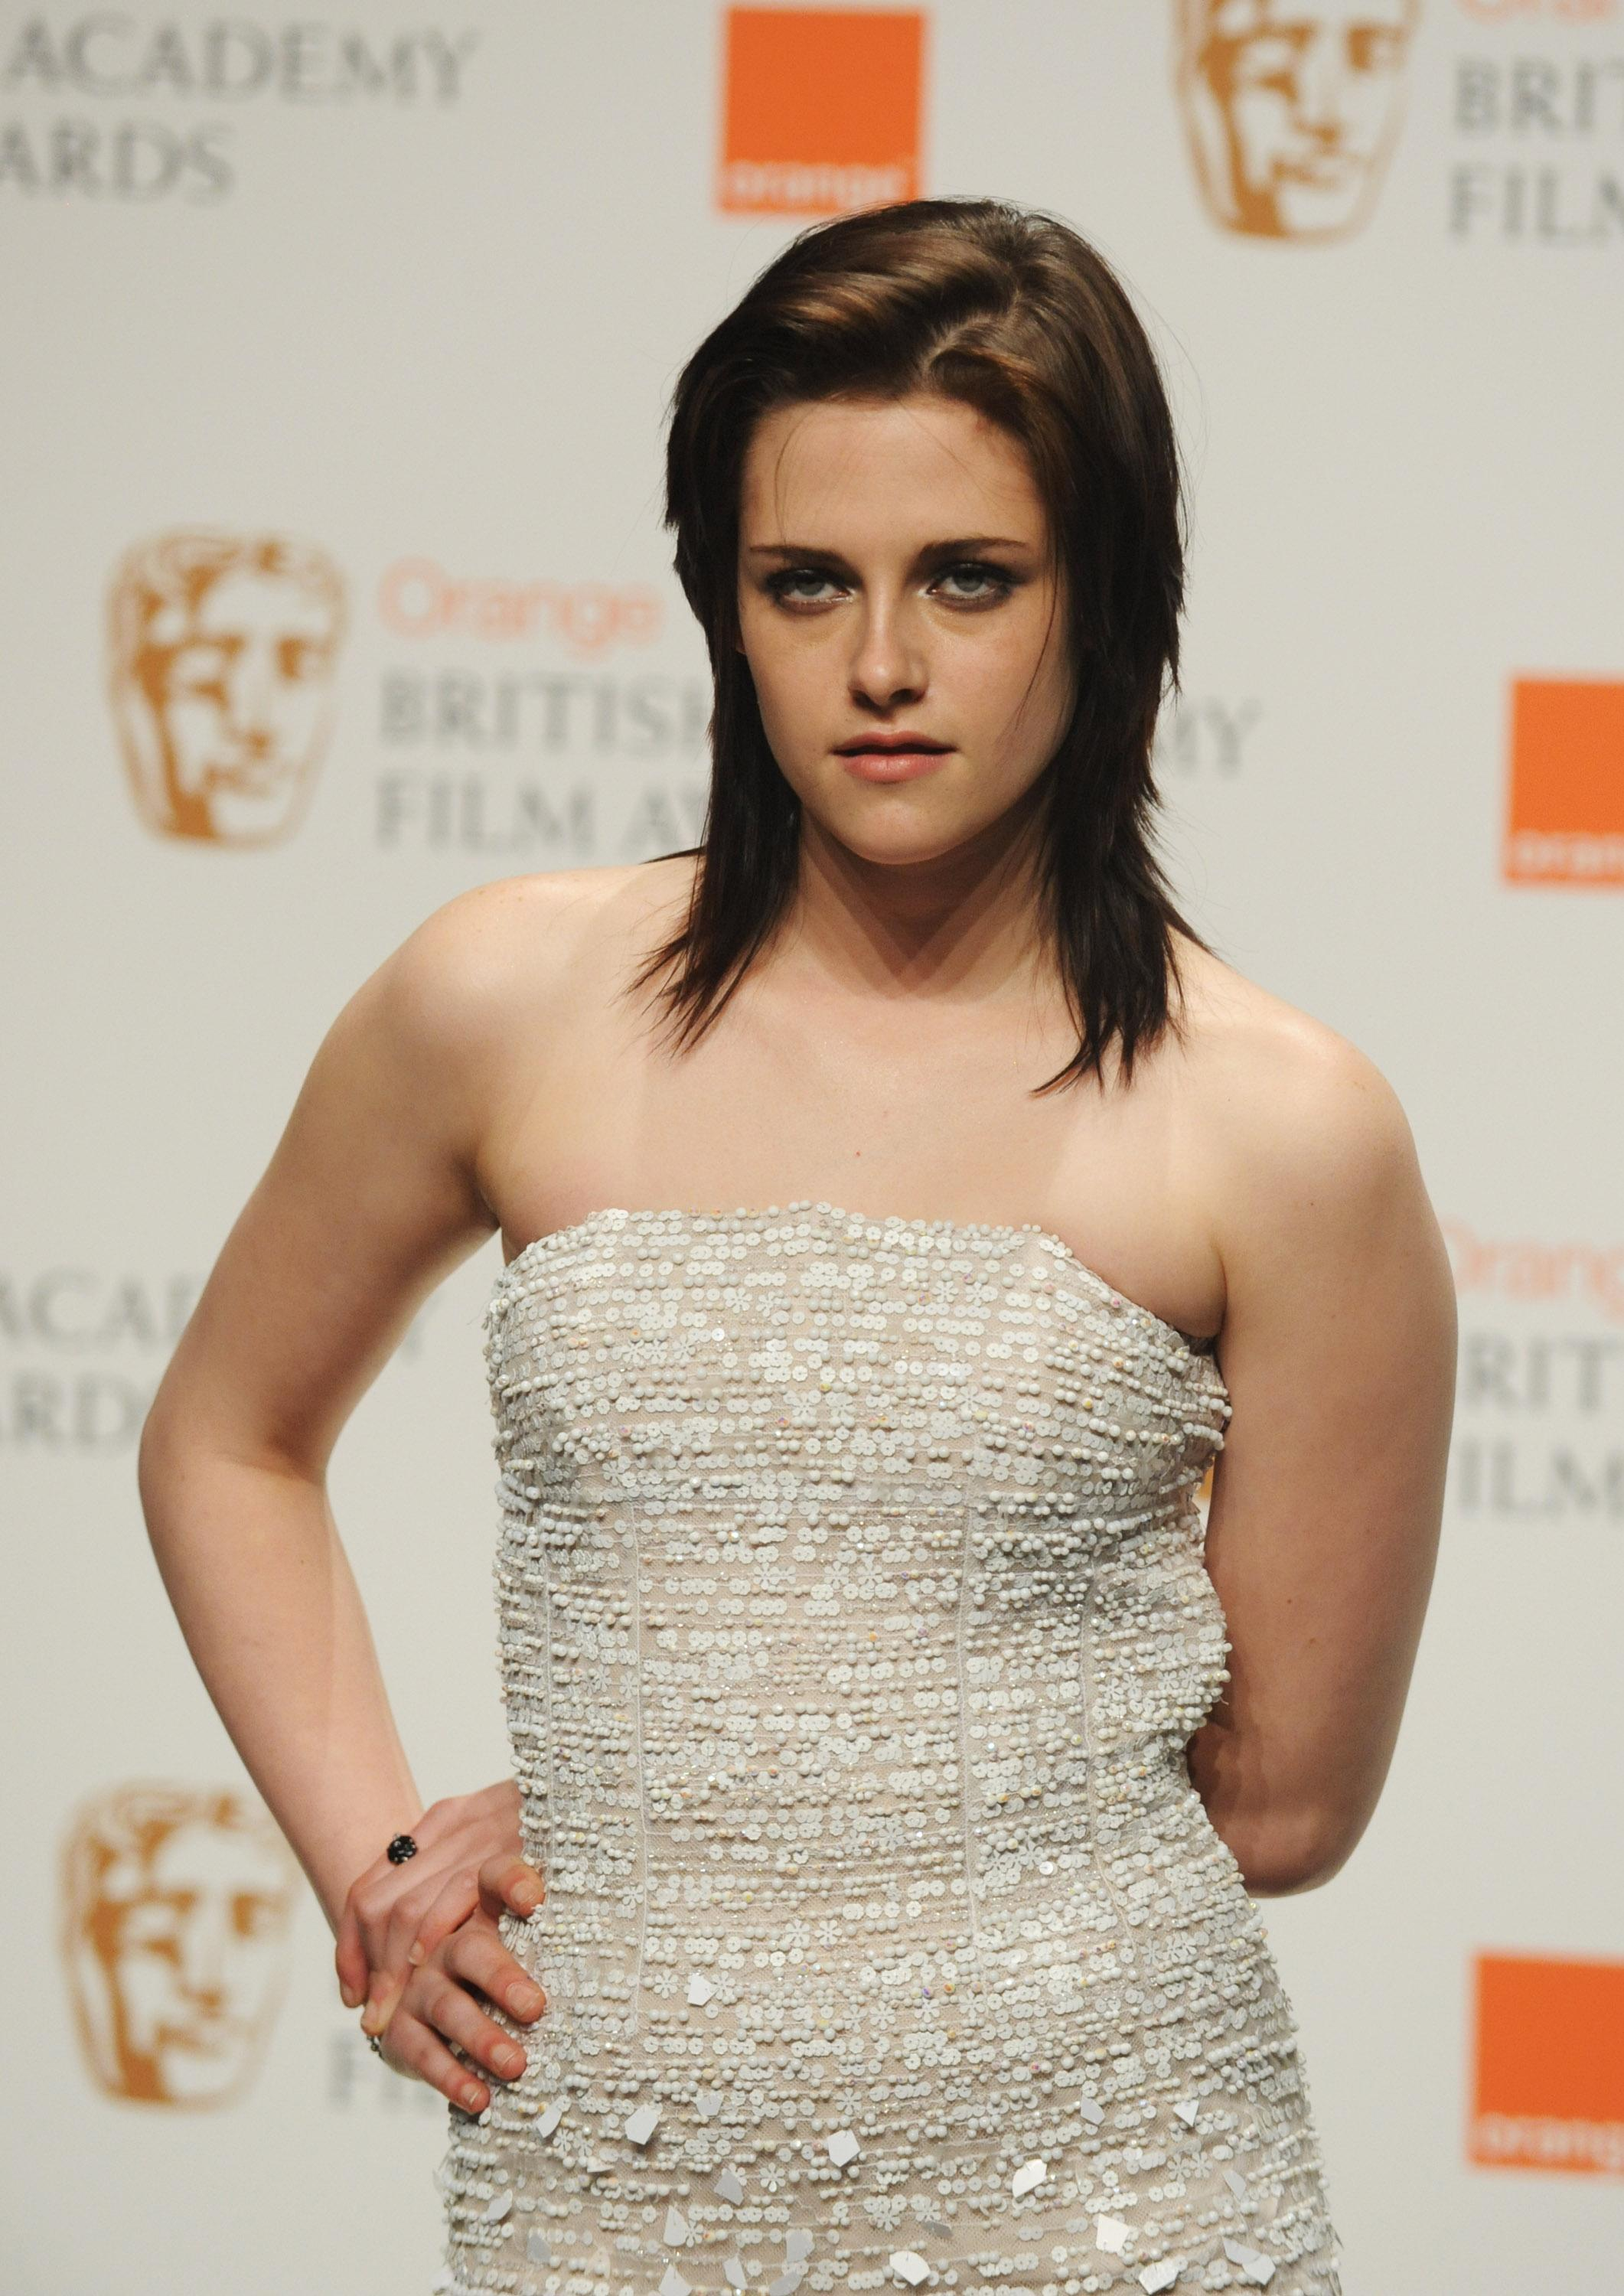 Women Kristen Stewart Celebrity HD Wallpaper